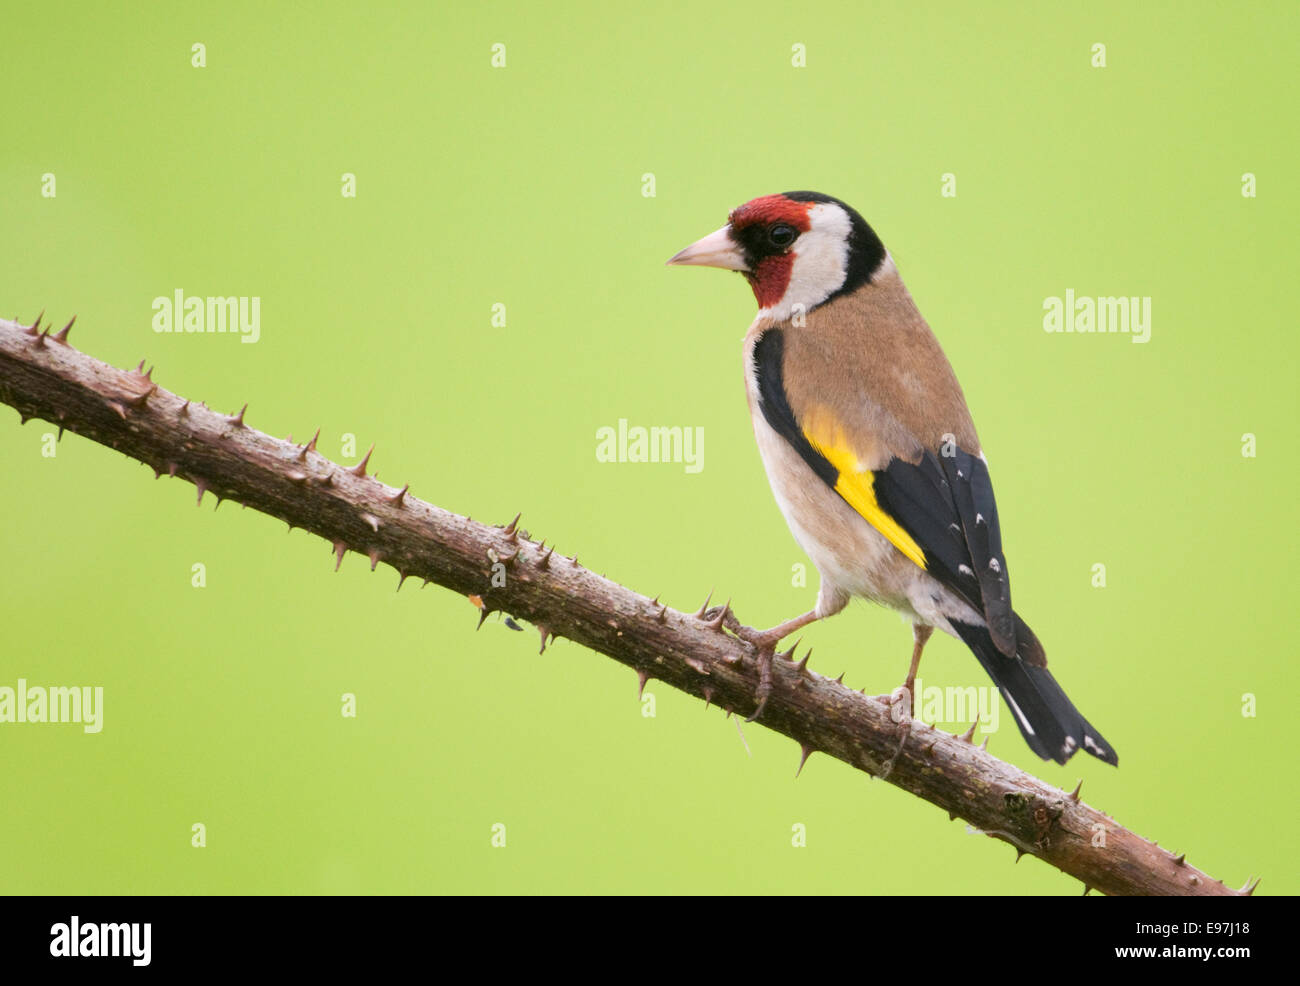 European Goldfinch (Carduelis carduelis) perched on a thorny bramble twig - Stock Image